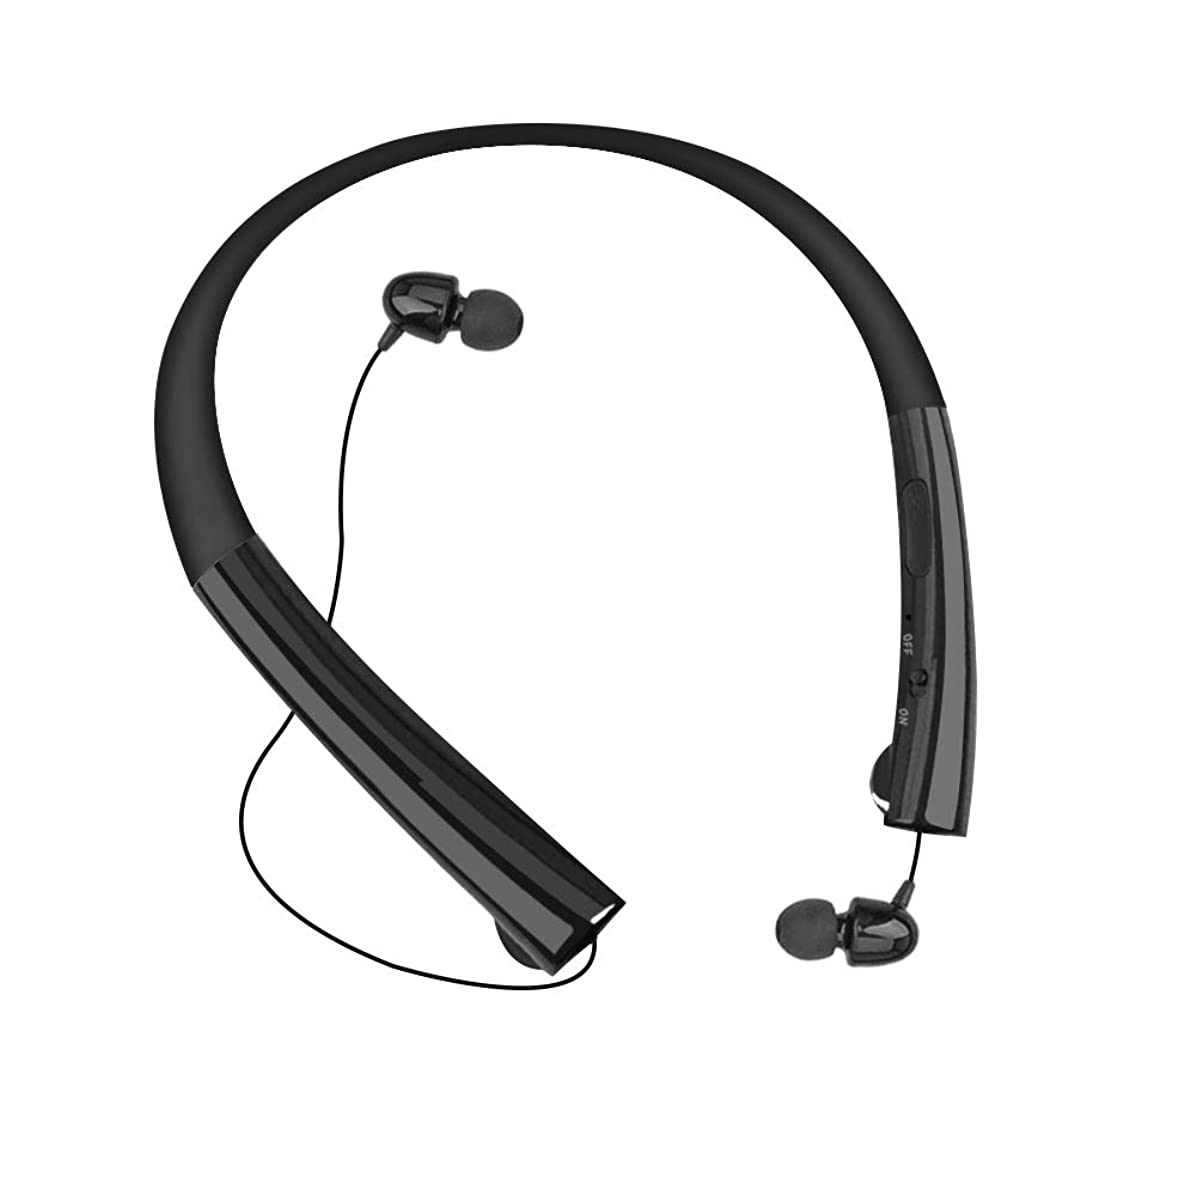 Bluetooth Headphones Chof Wireless Retractable Earbuds Neckband Bluetooth Headset Stereo Sound with Mic, Sport Sweatproof, Call Vibrate Alert-Black